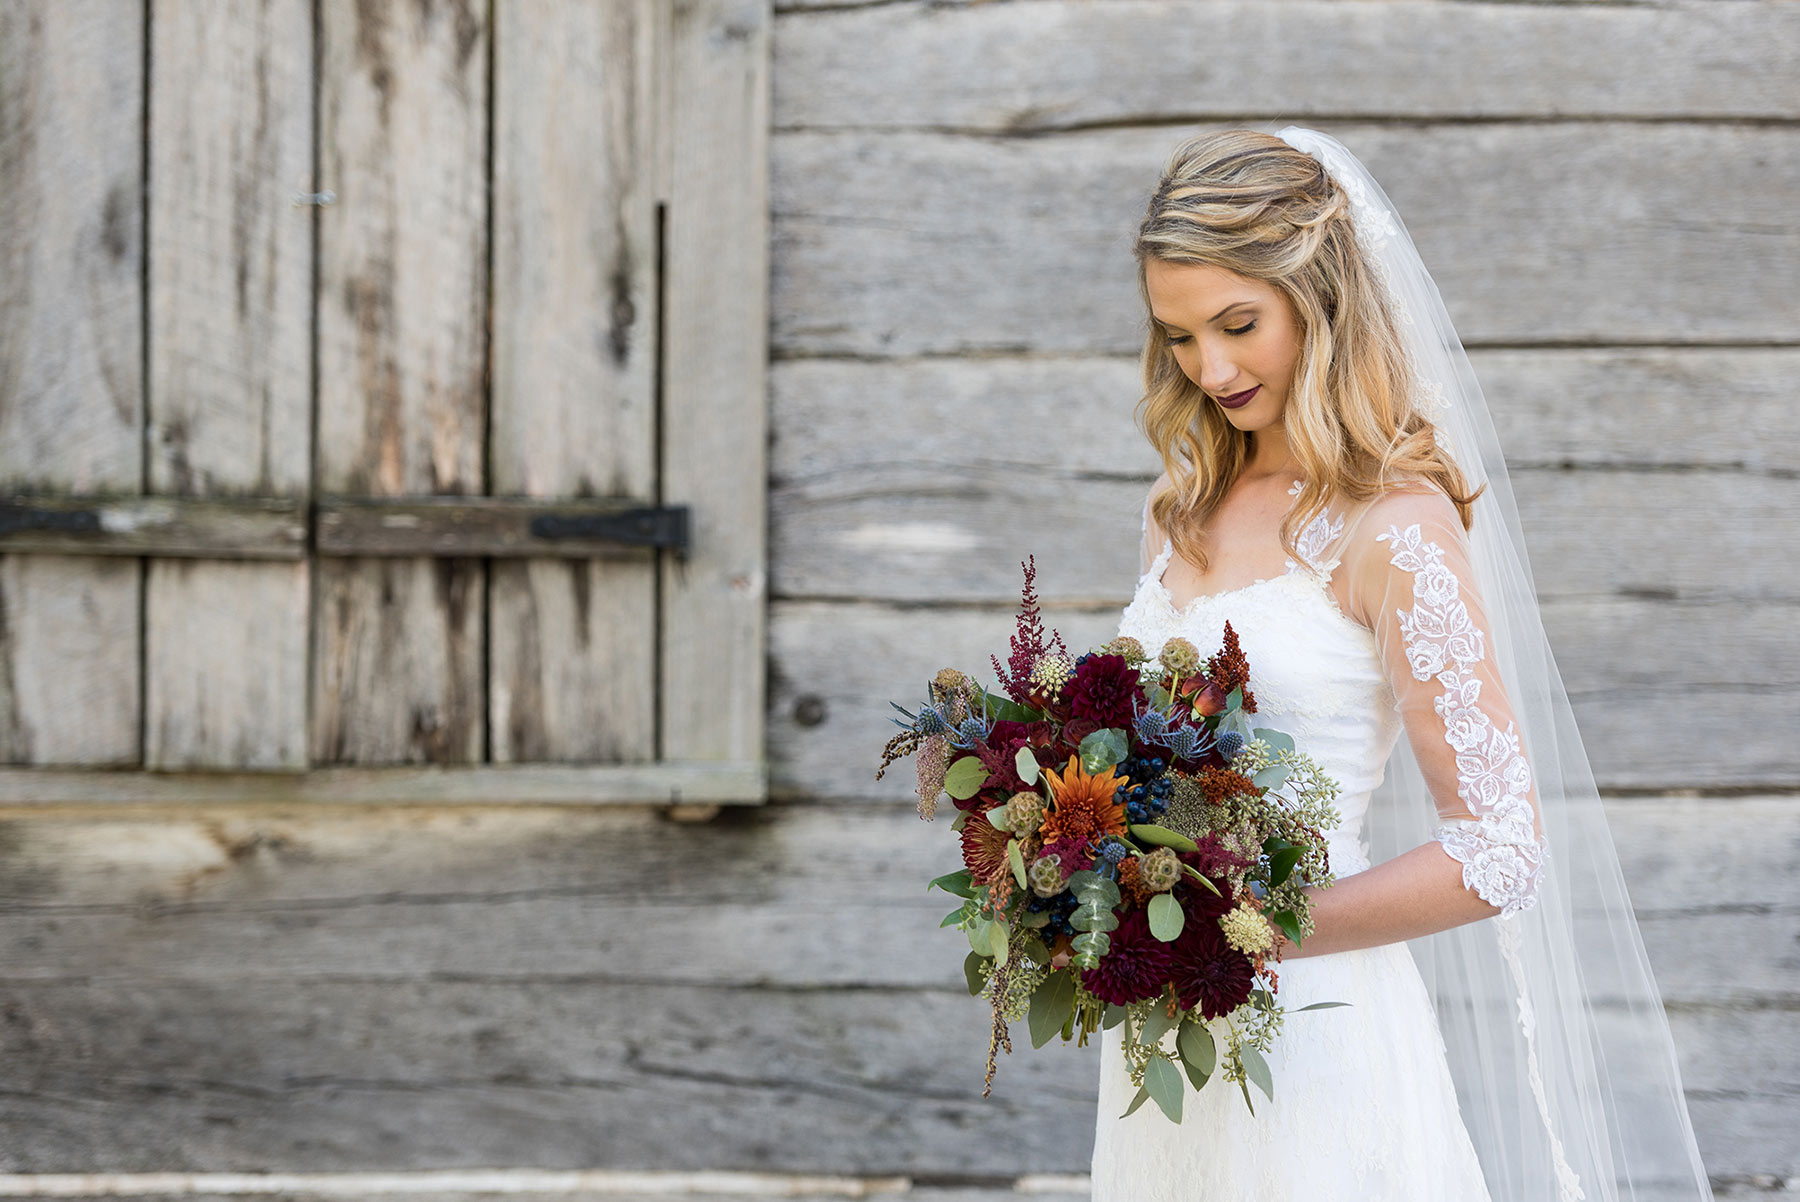 Copy of Stunning Bridal Shot with Flowers in Front of Barn  |  Bride on Wedding Day  |  Life & Art Photography  |  Destination Wedding Photographer